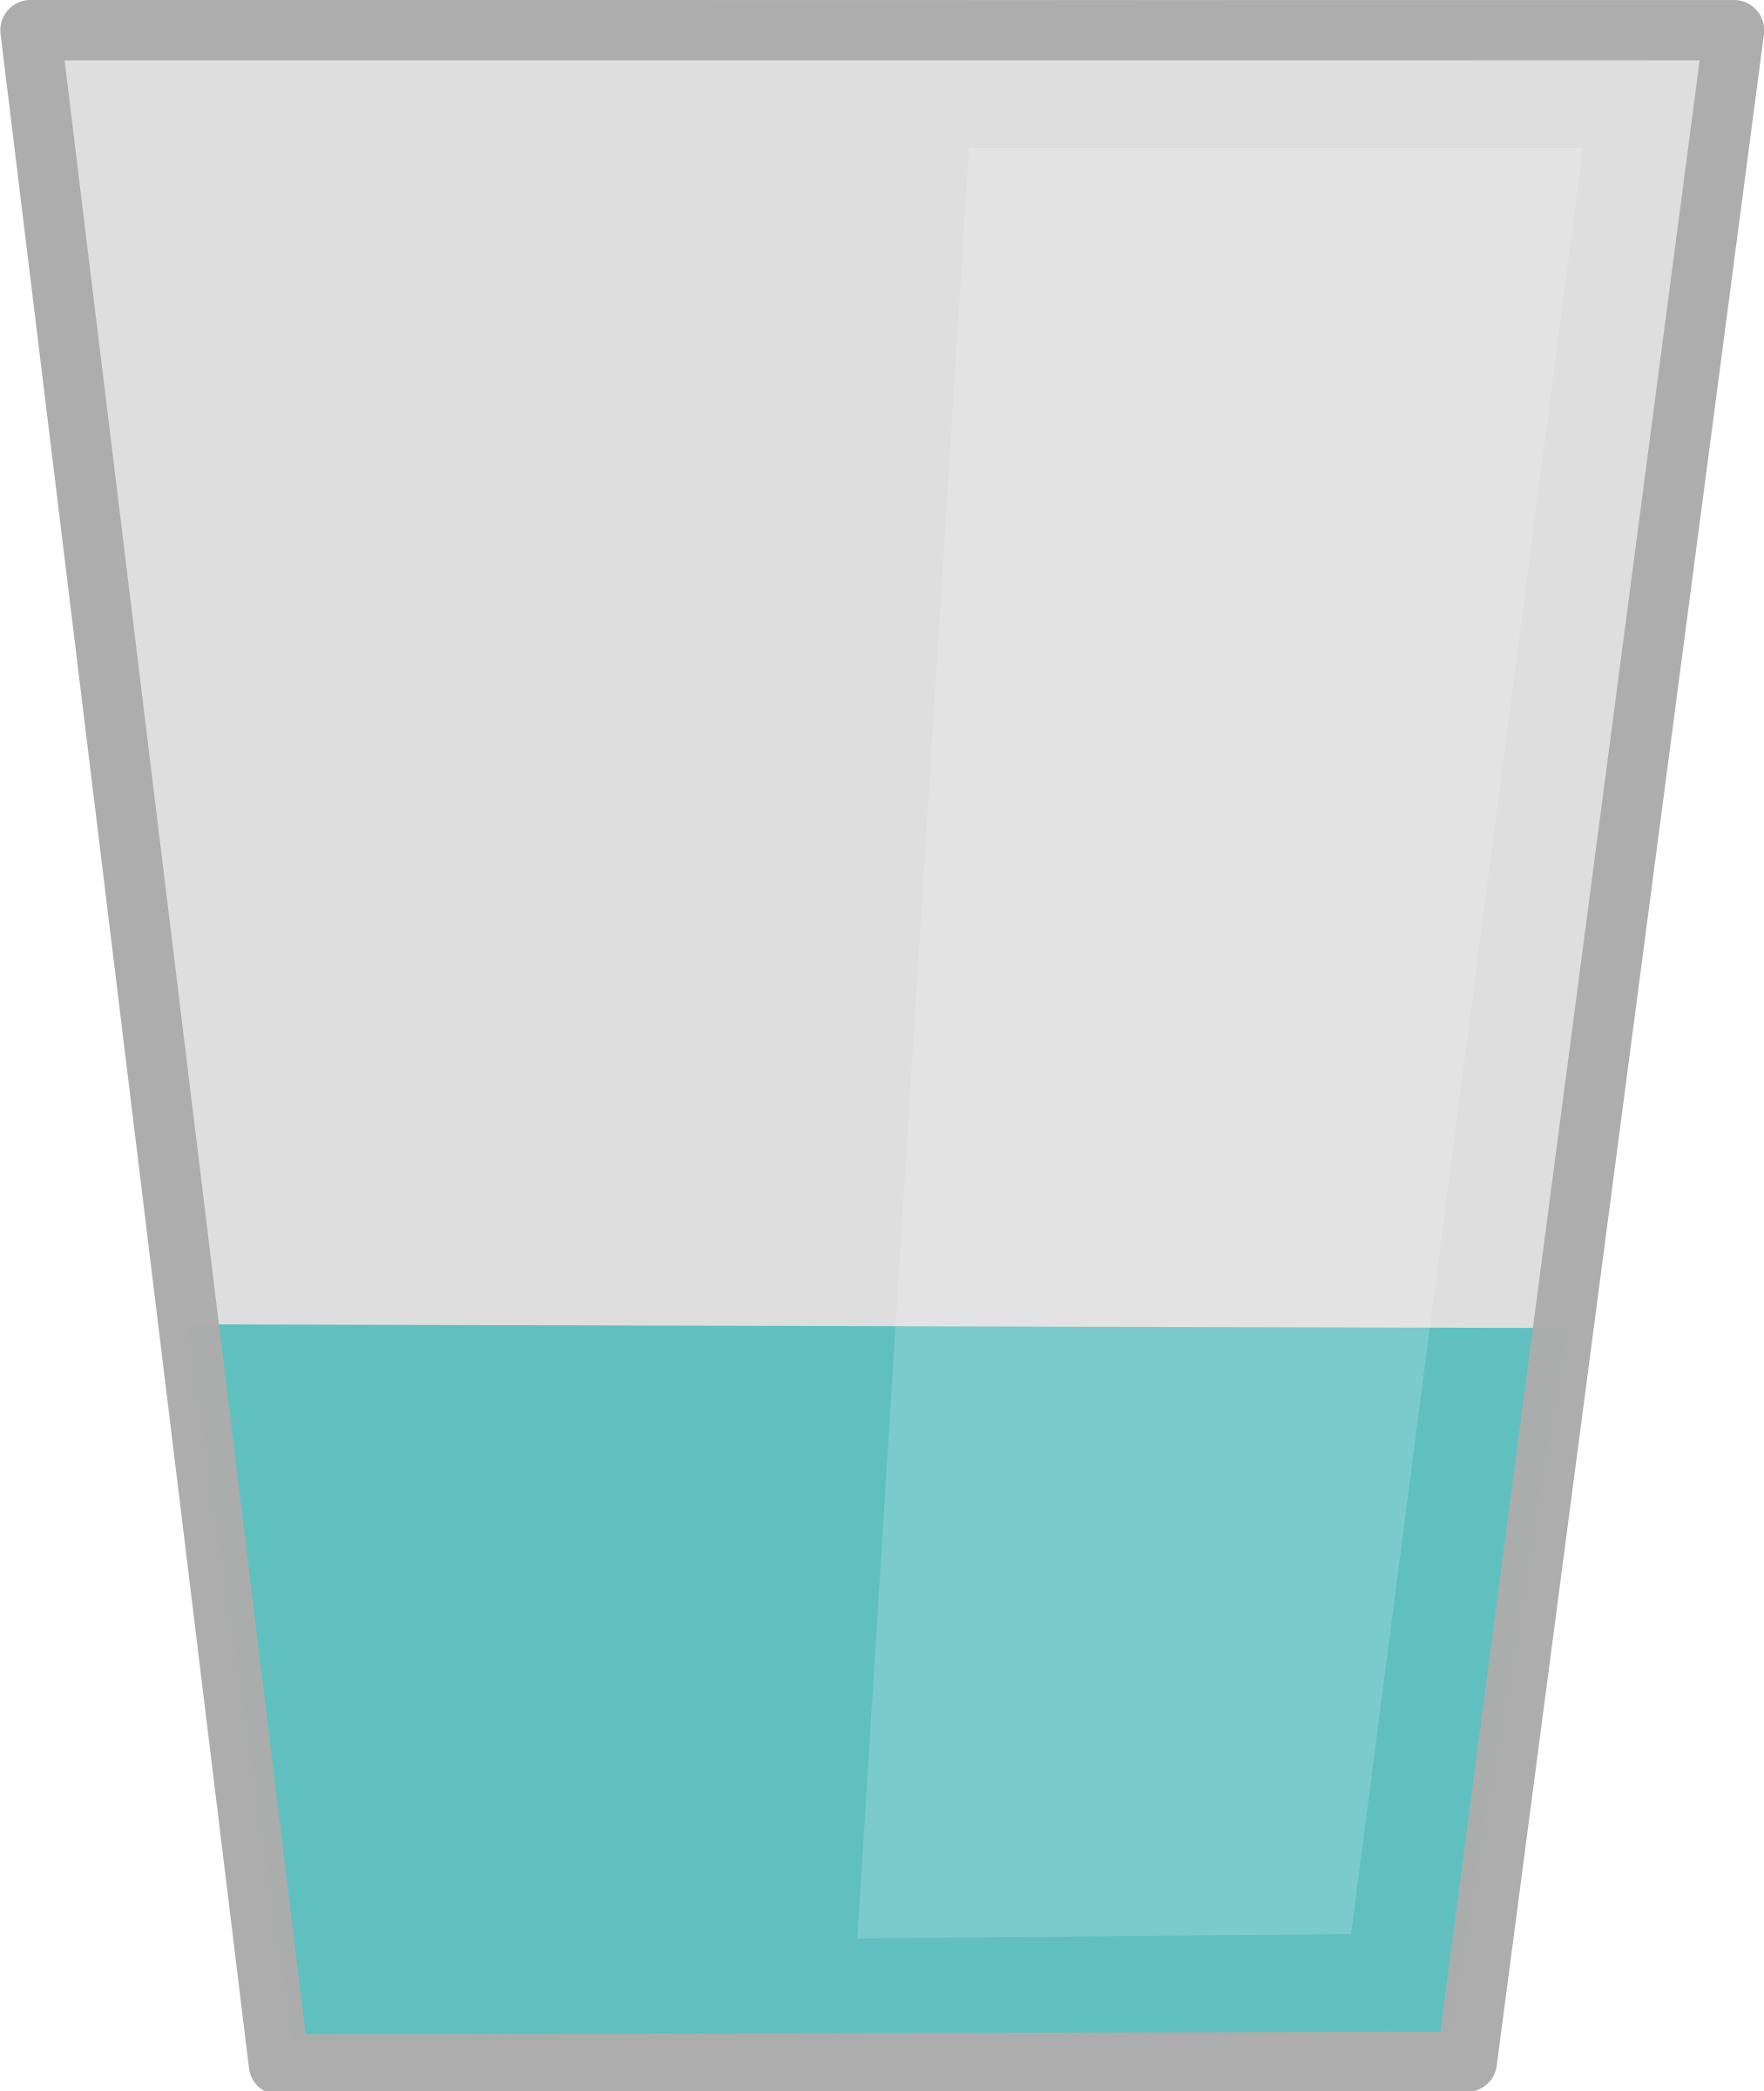 picture black and white Clipart glass of water. Transparent ice translucent